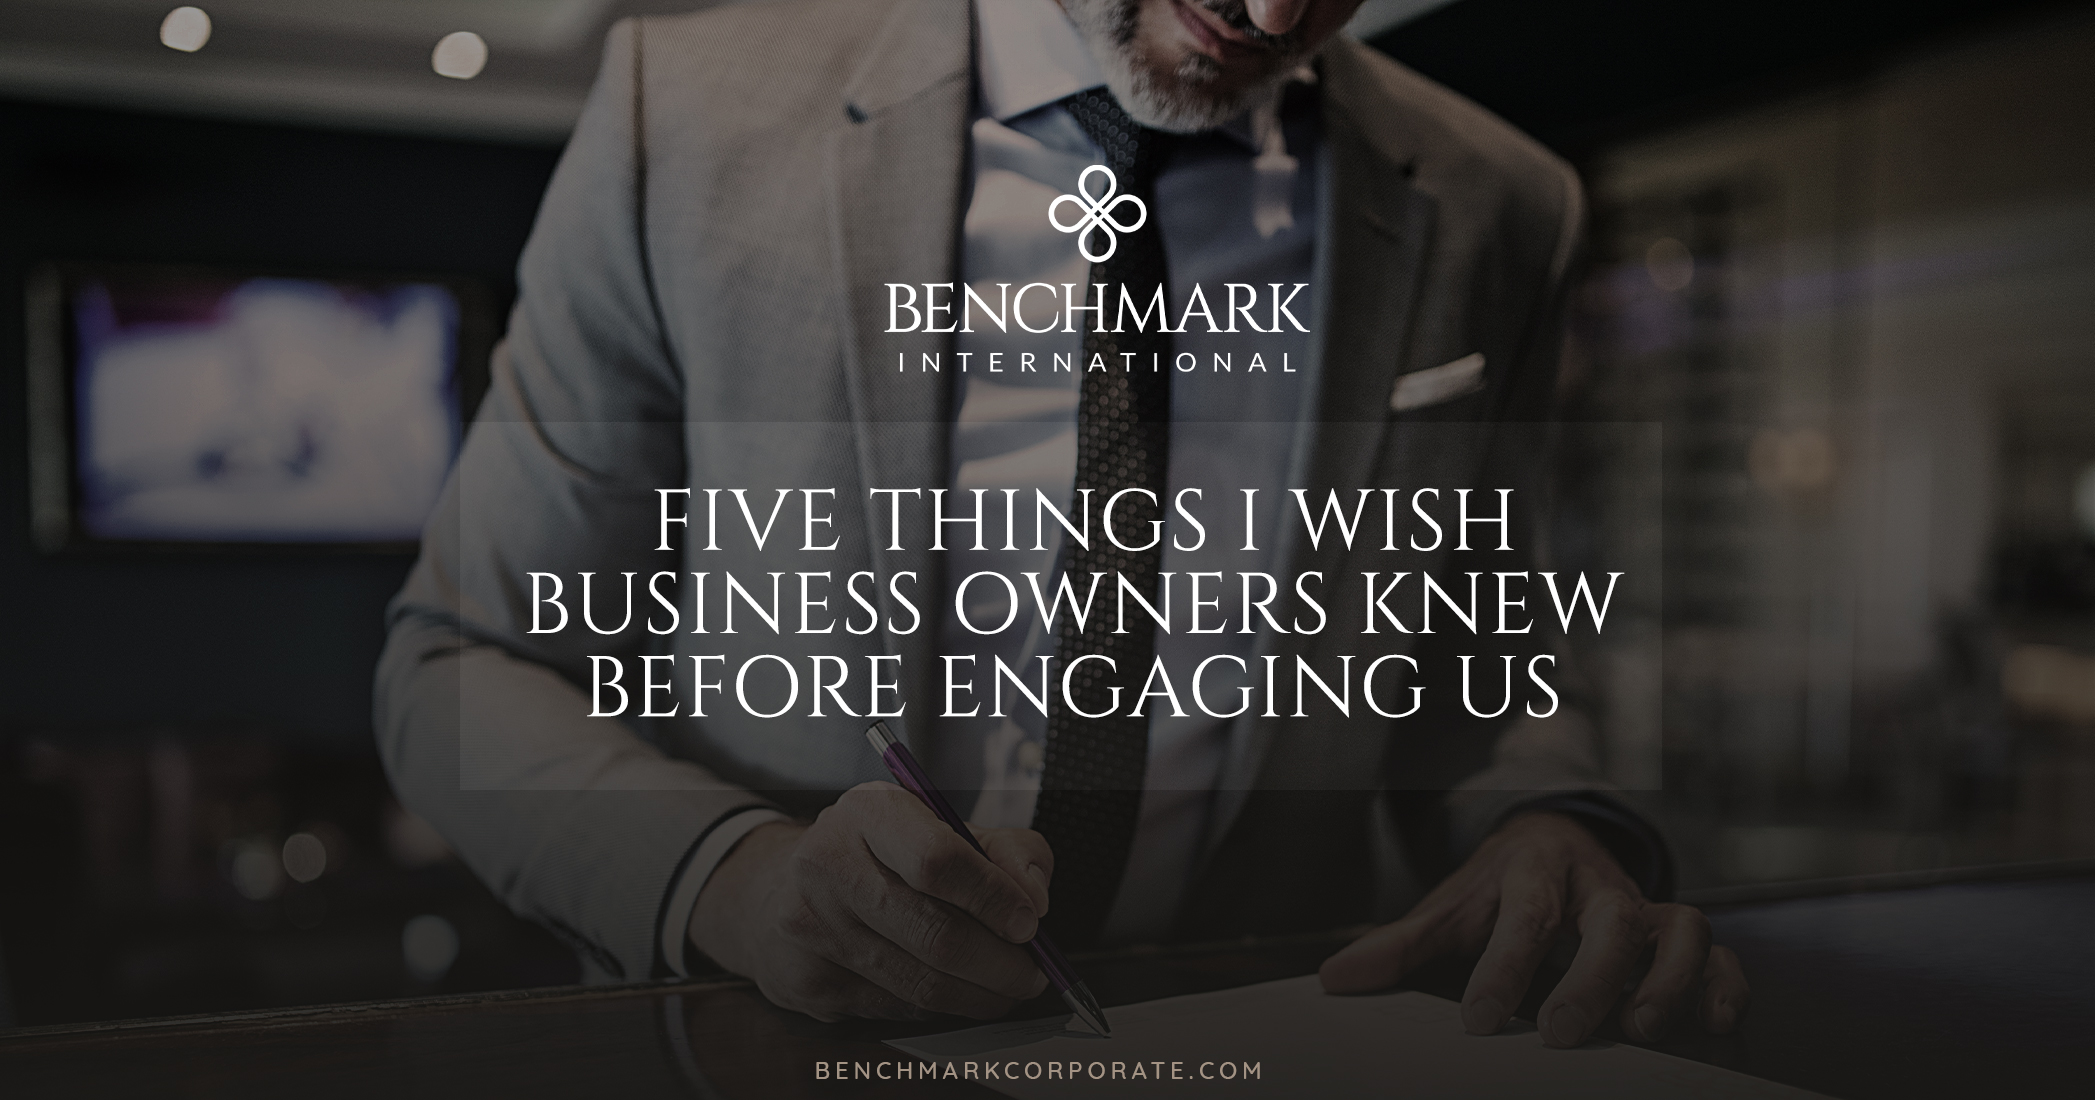 Five Things I Wish Business Owners Knew Before Engaging Us